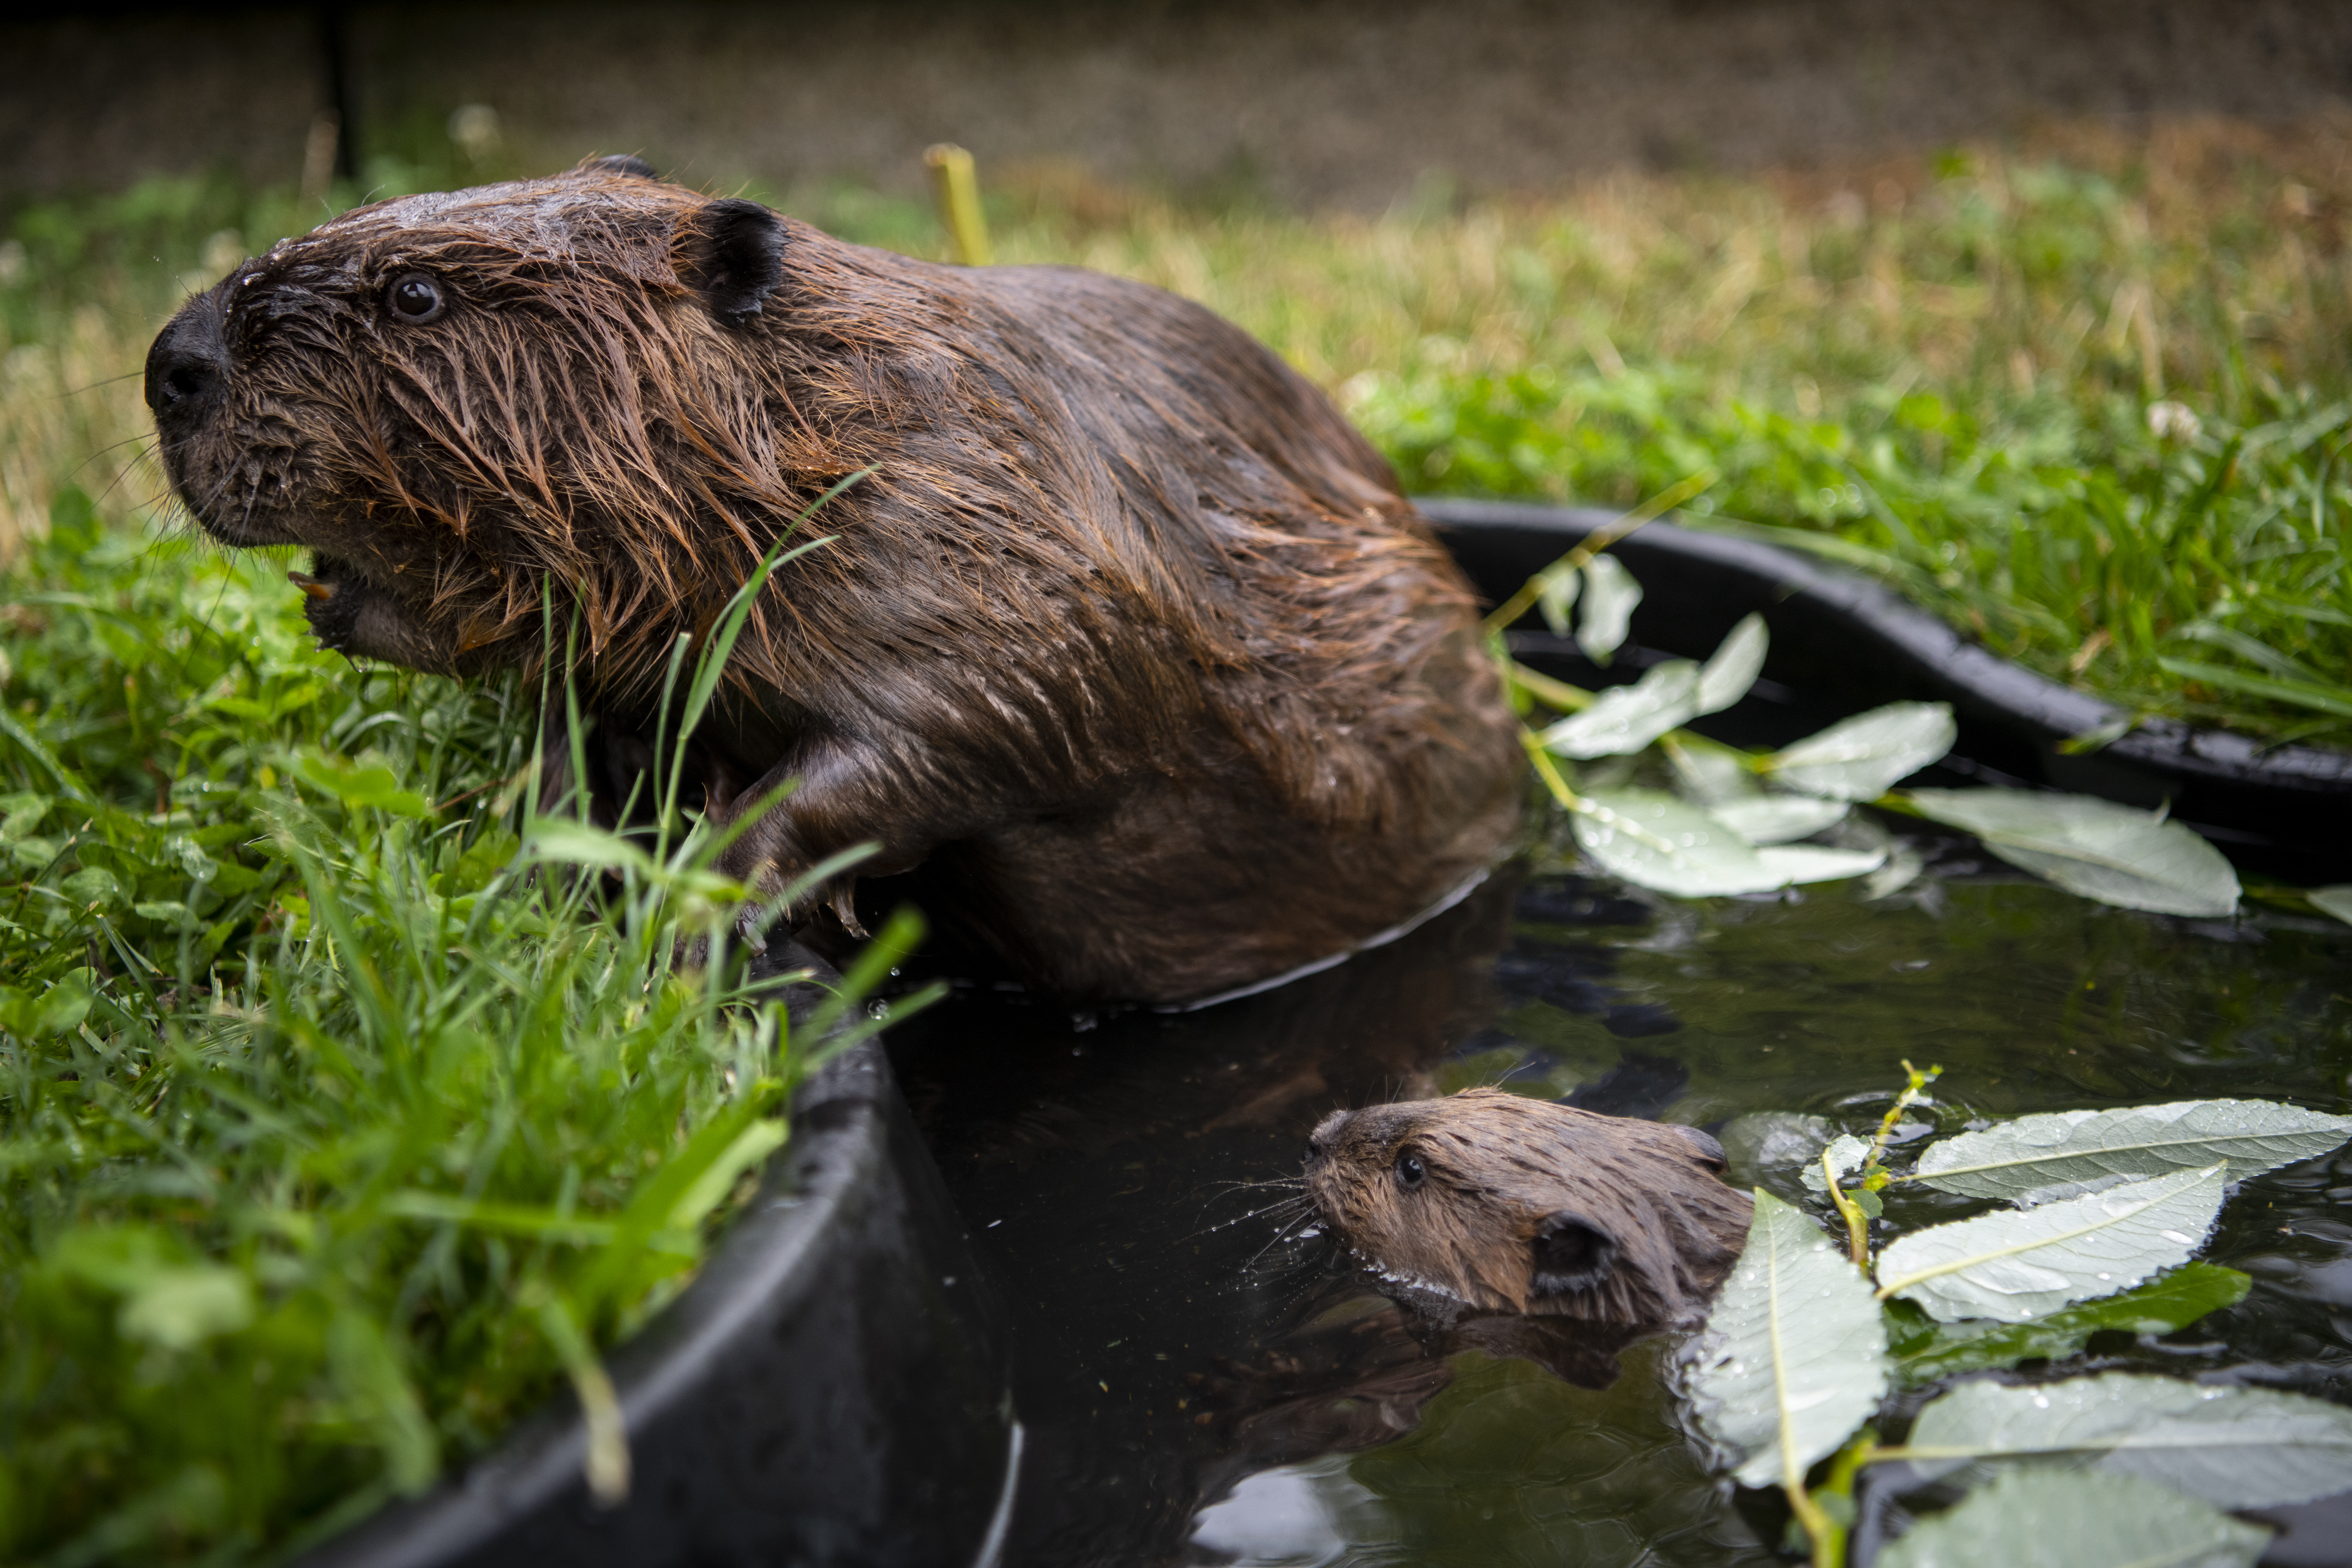 "OK, we didn't mean to be so forceful in our headline - but COME ON! Look at this little nugget named Butternut, a baby beaver who is making her public debut at the Point Defiance Zoo & Aquarium in Tacoma, WA this weekend Aug. 10 & 11. Check out some behind-the-scenes photos of Butternut and her mom Nutmeg and dad Walnut. More on visiting the tiny beaver at{&nbsp;}<a  href=""https://www.pdza.org/"" target=""_blank"" title=""https://www.pdza.org/"">www.pdza.org</a>.{&nbsp;} (Photo: Katie Cotterill)"